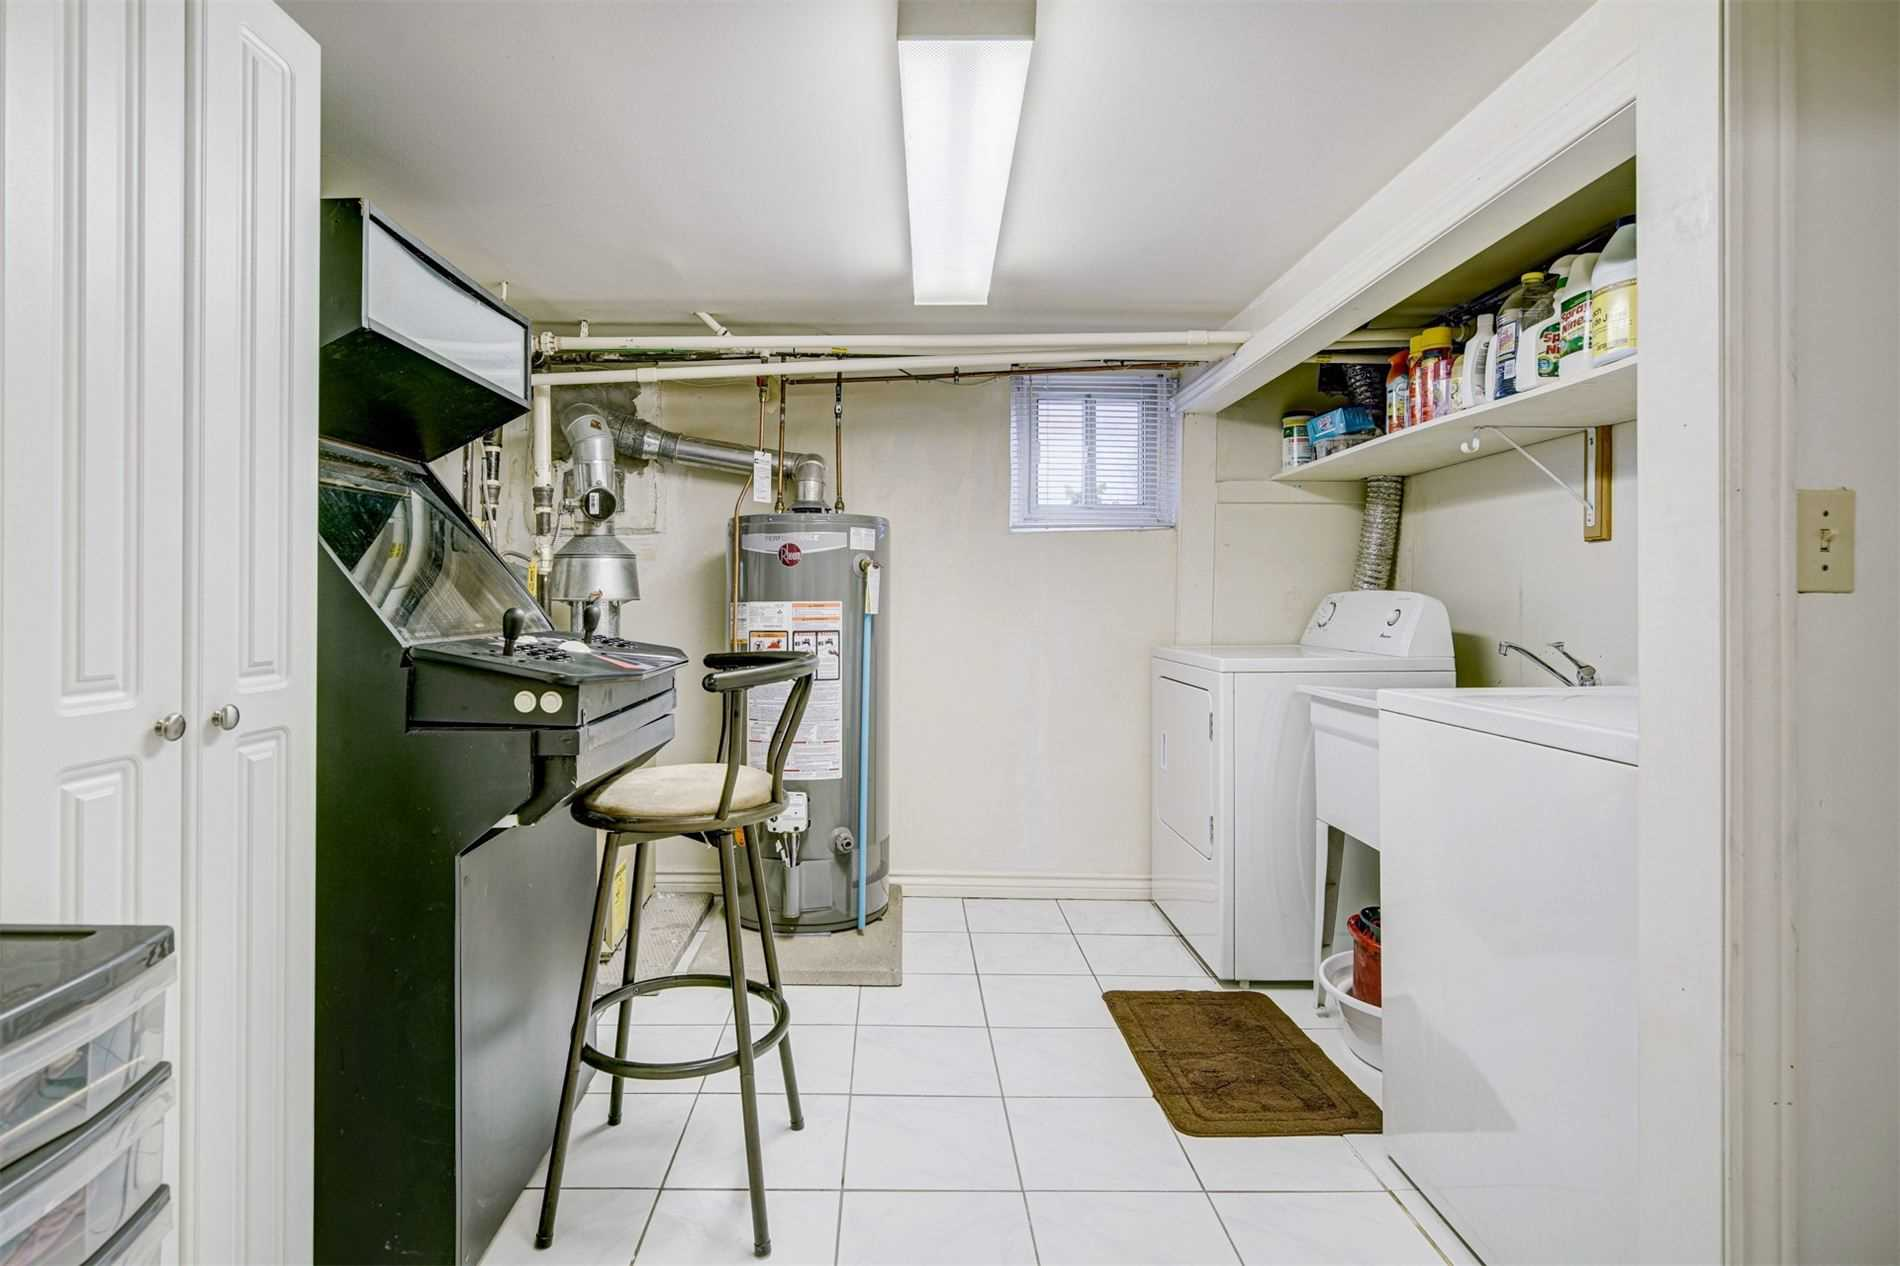 554 Caledonia Rd - Caledonia-Fairbank Detached for sale, 2 Bedrooms (W5305900) - #21